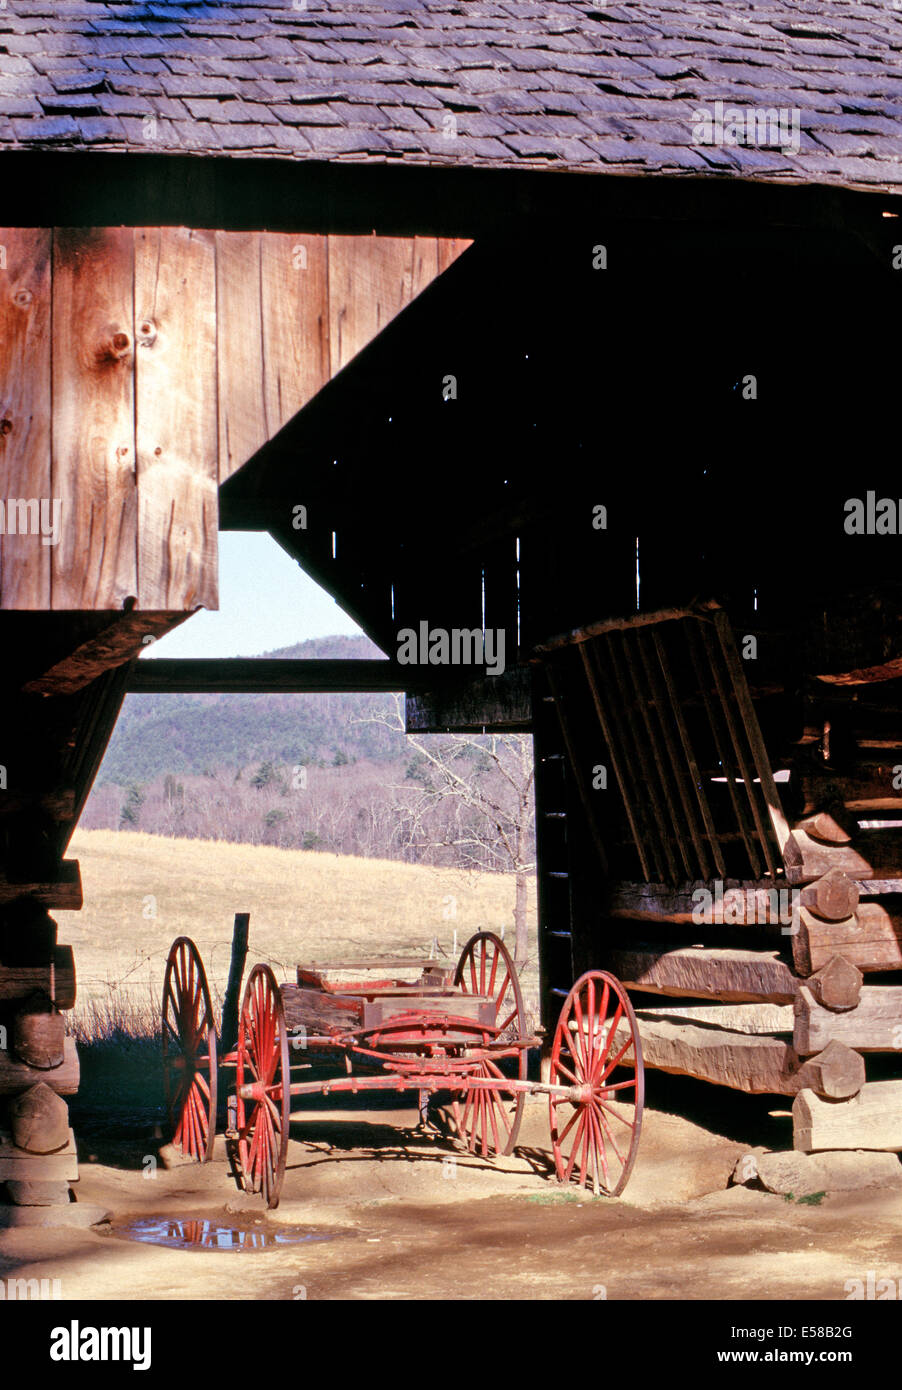 A carriage sits inside the double-cantilever barn,Cades Cove,Great Smoky Mountain National Park - Stock Image